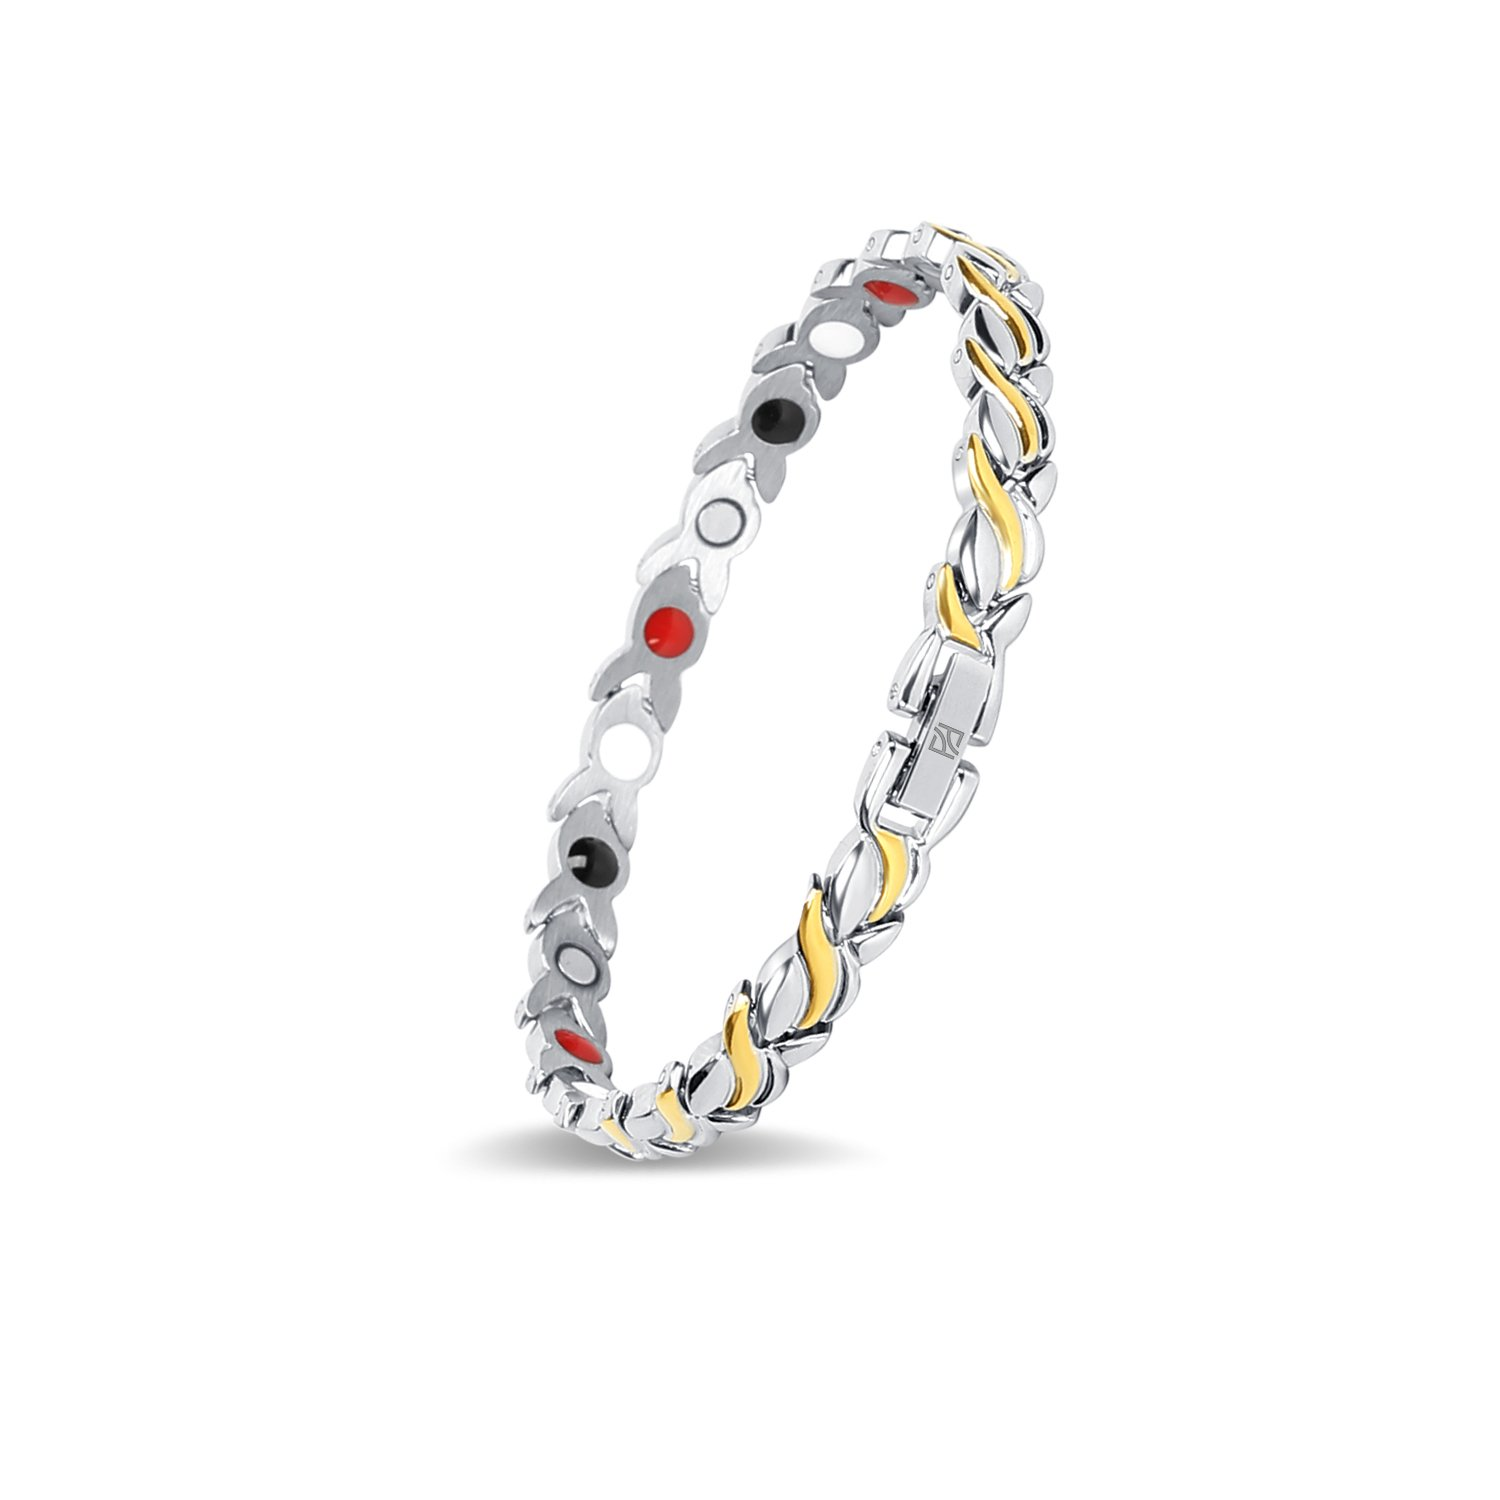 Fashion Titanium Magnetic Therapy Bracelet Pain Relief for Arthritis and Carpal Tunnel Girl for Elegant Women (Silver+Gold)